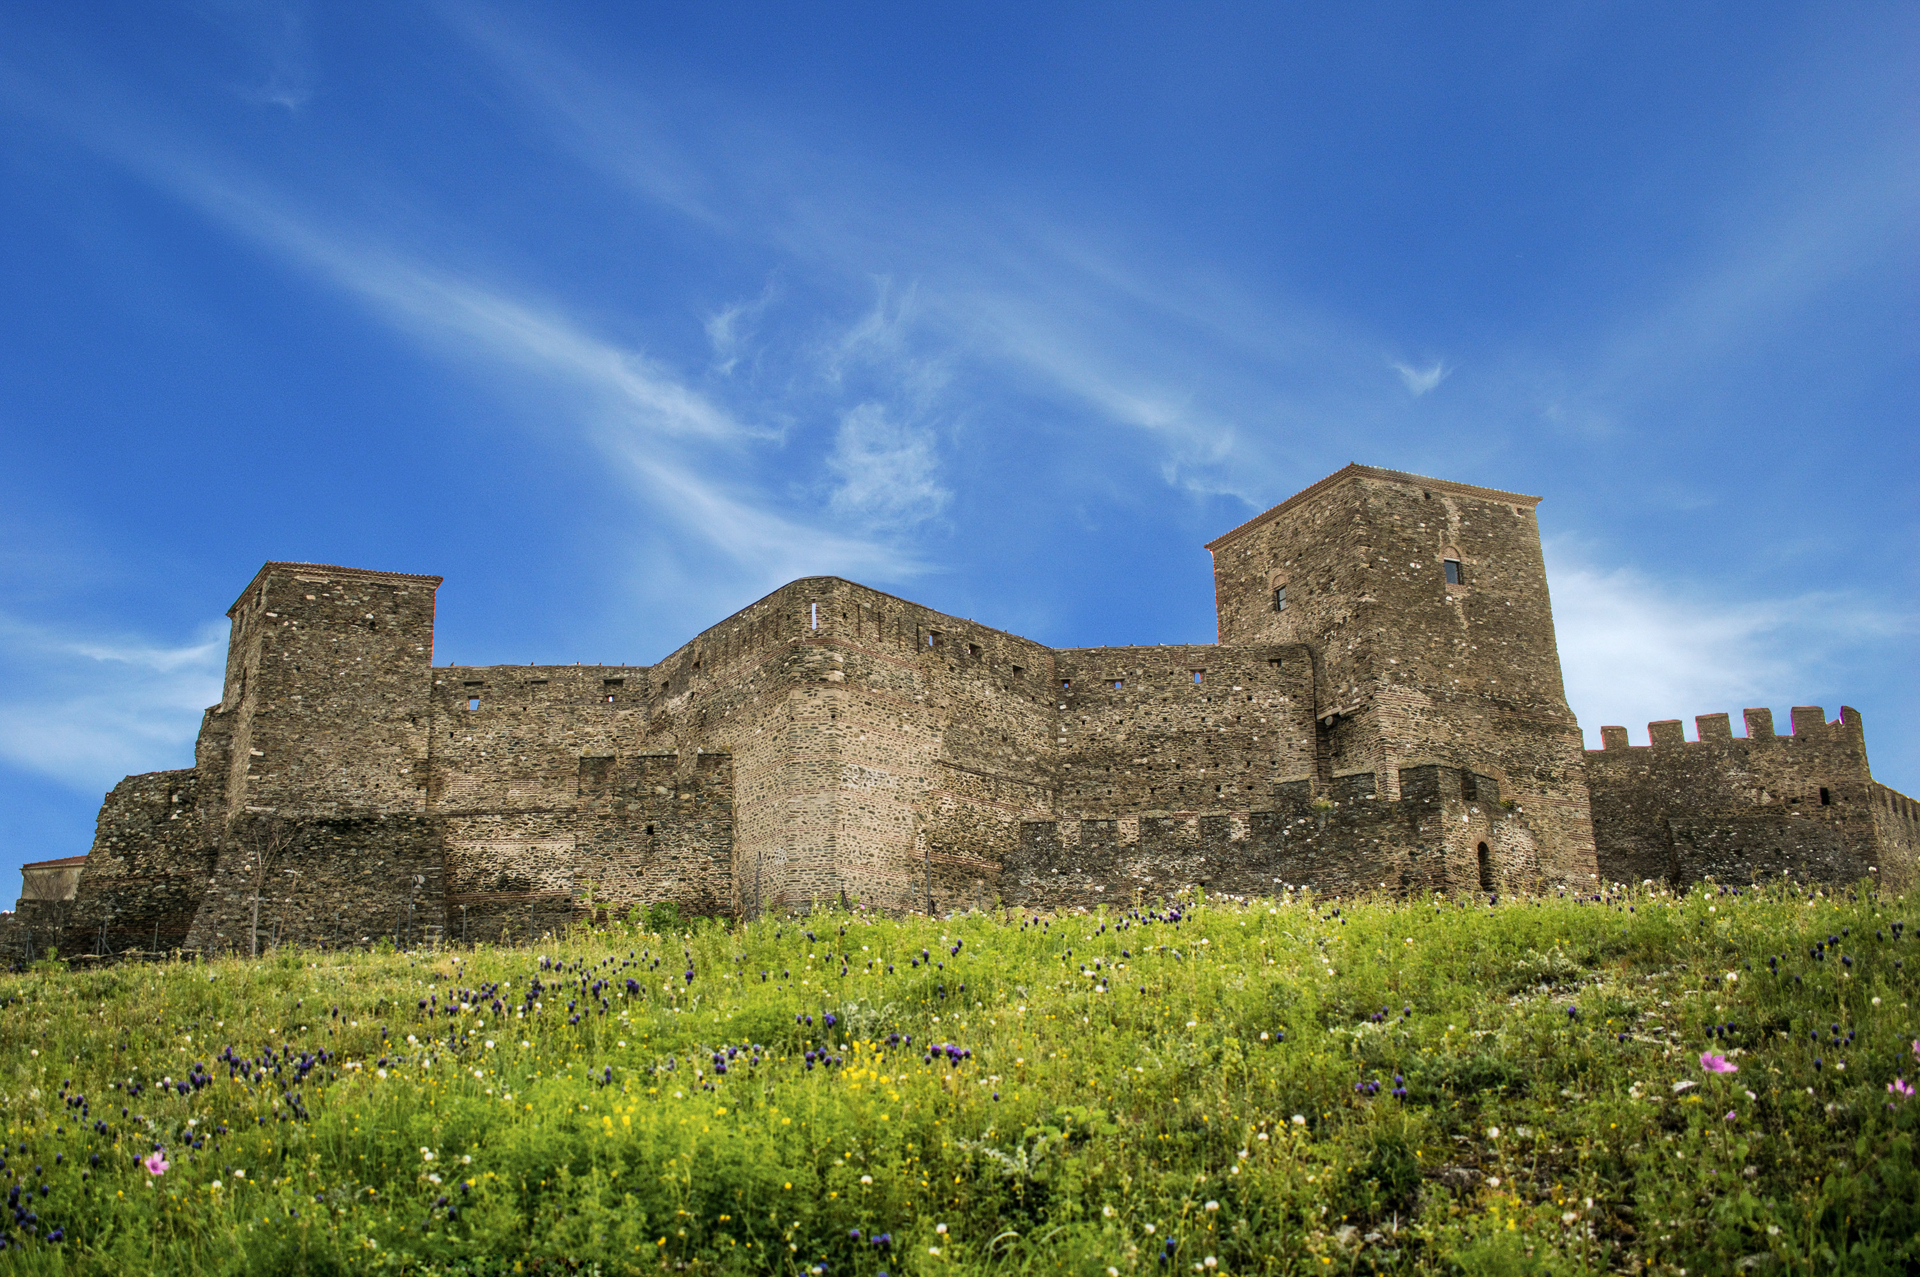 Heptapyrgion Ottoman fortress found in Thessaloniki, Greece.